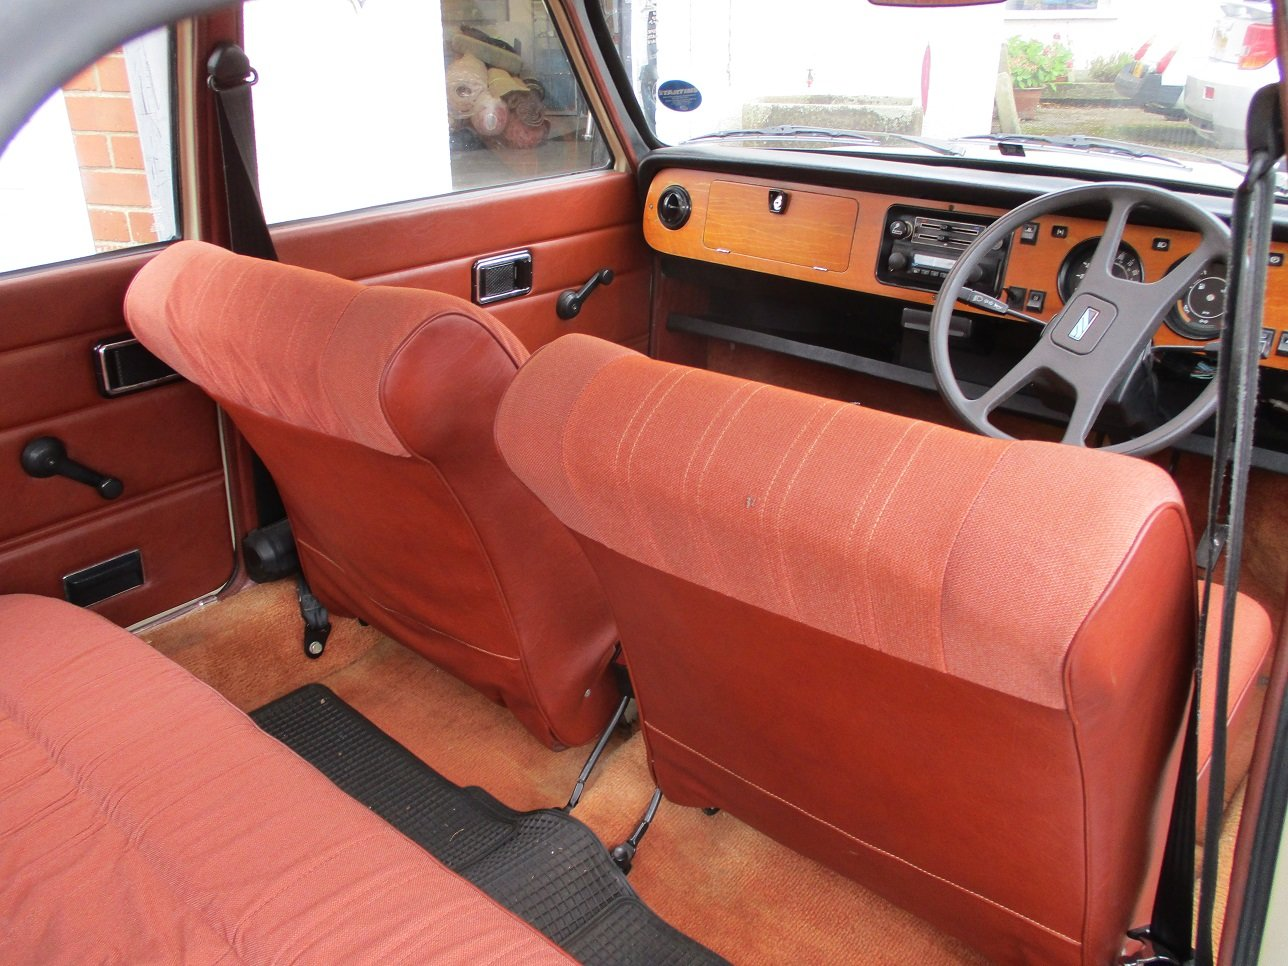 1980 Austin Maxi - Good Condition For Sale (picture 4 of 4)